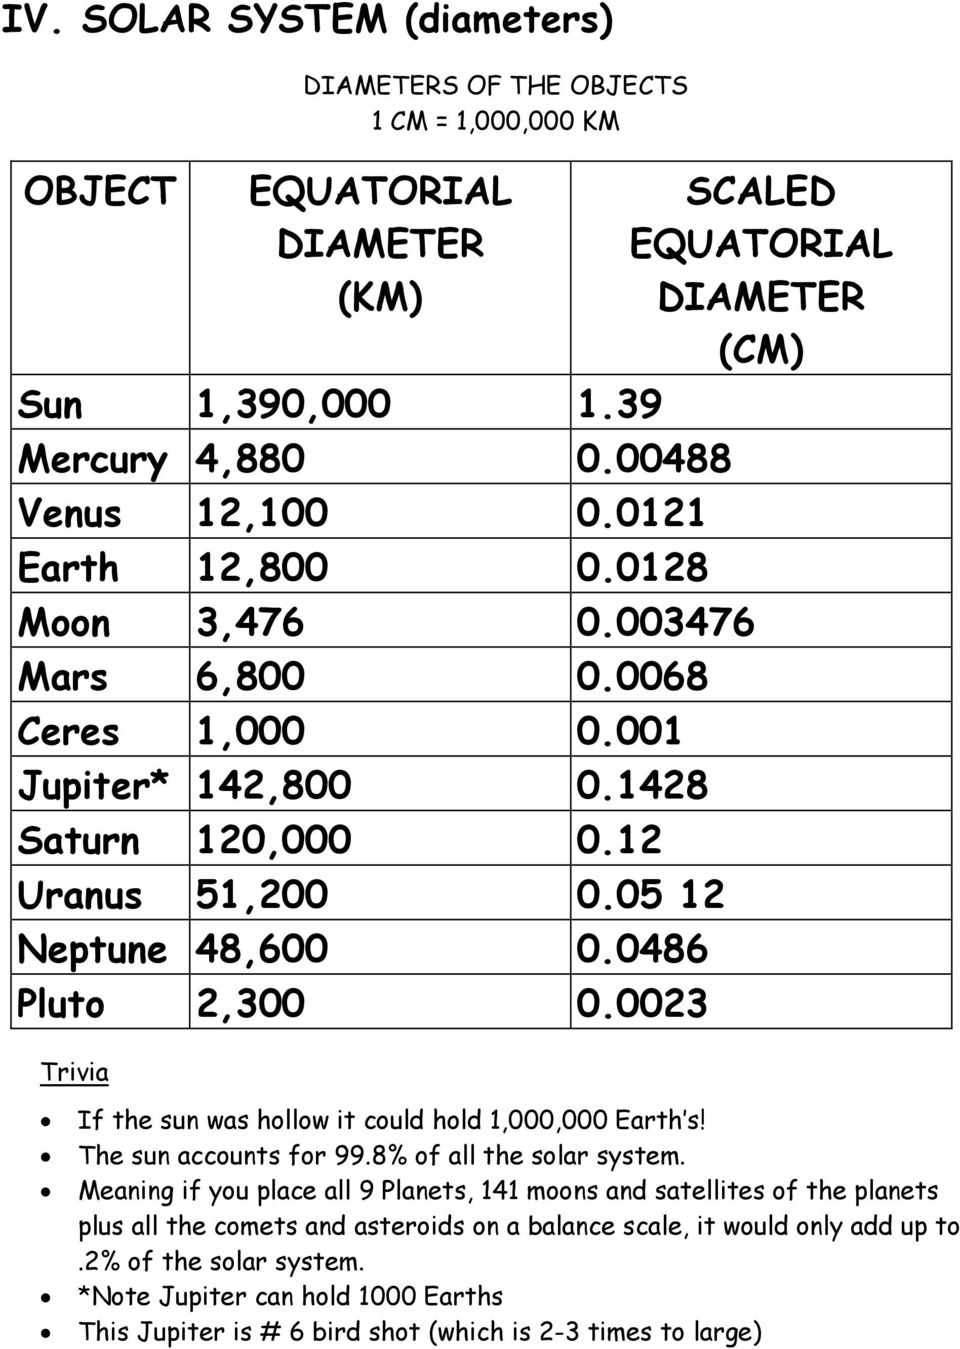 0023 Trivia SCALED EQUATORIAL DIAMETER (CM) If the sun was hollow it could hold 1,000,000 Earth s! The sun accounts for 99.8% of all the solar system.